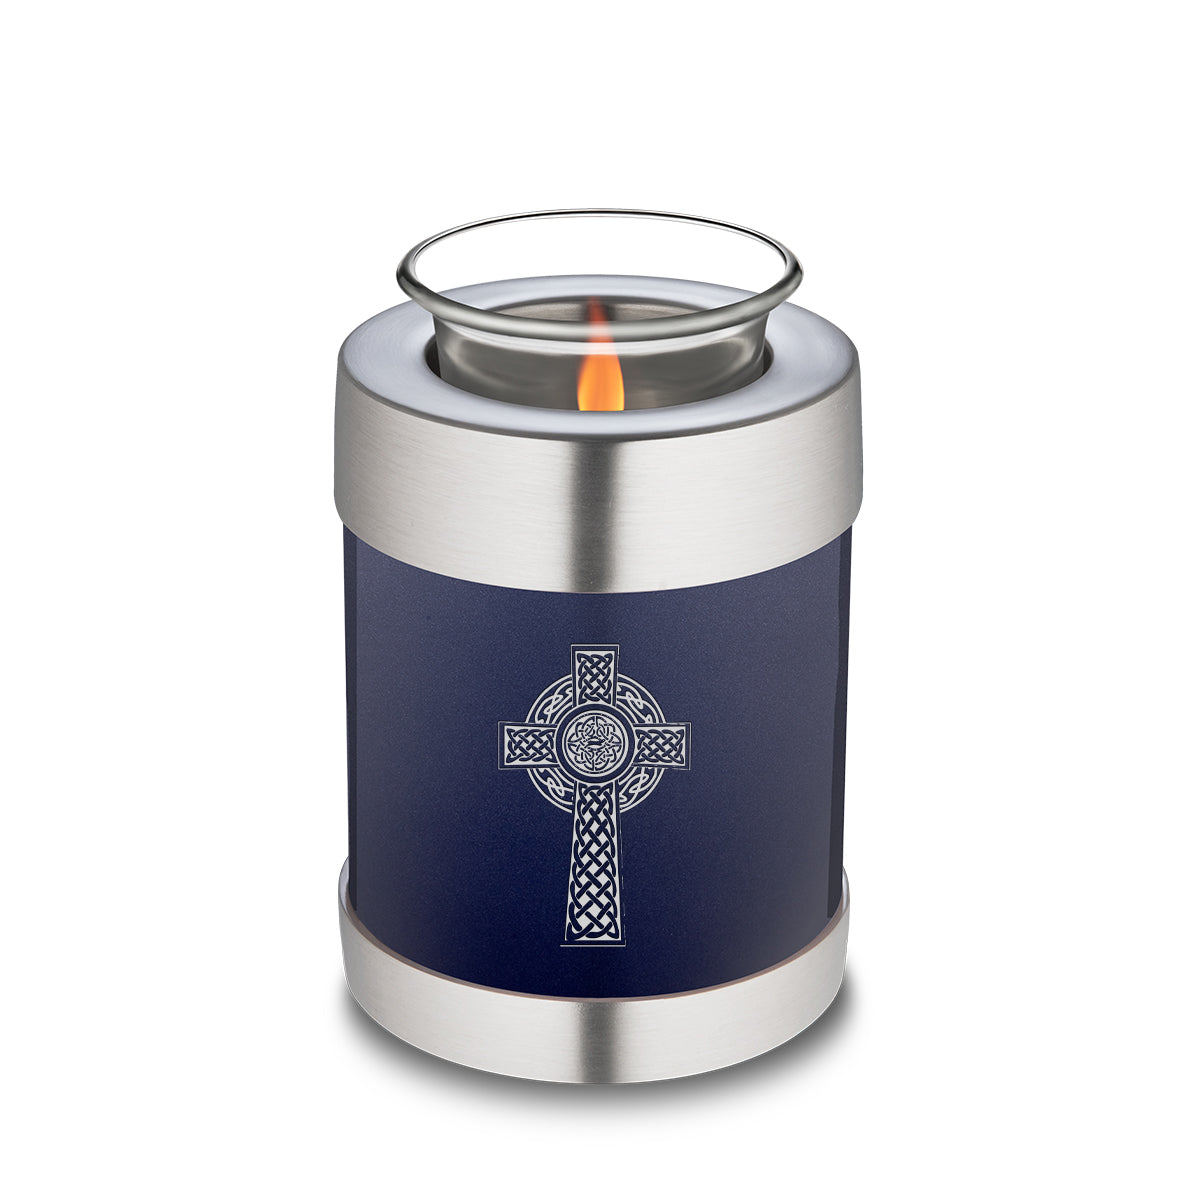 Candle Holder Embrace Cobalt Blue Celtic Cross Cremation Urn